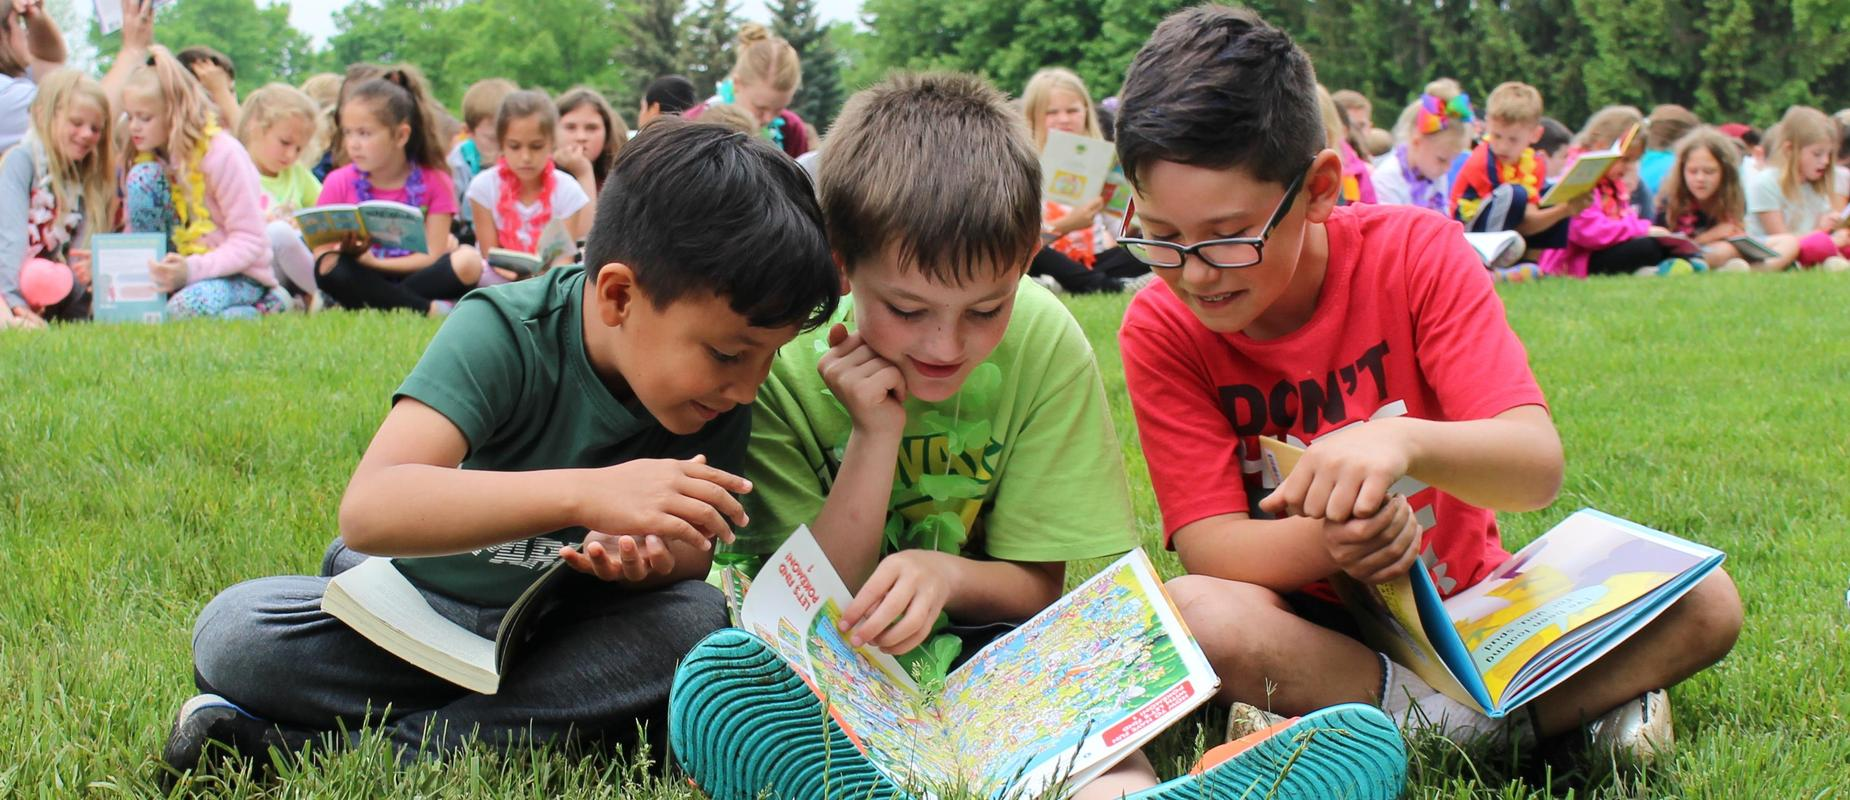 three boys read outside and point at book together on grass